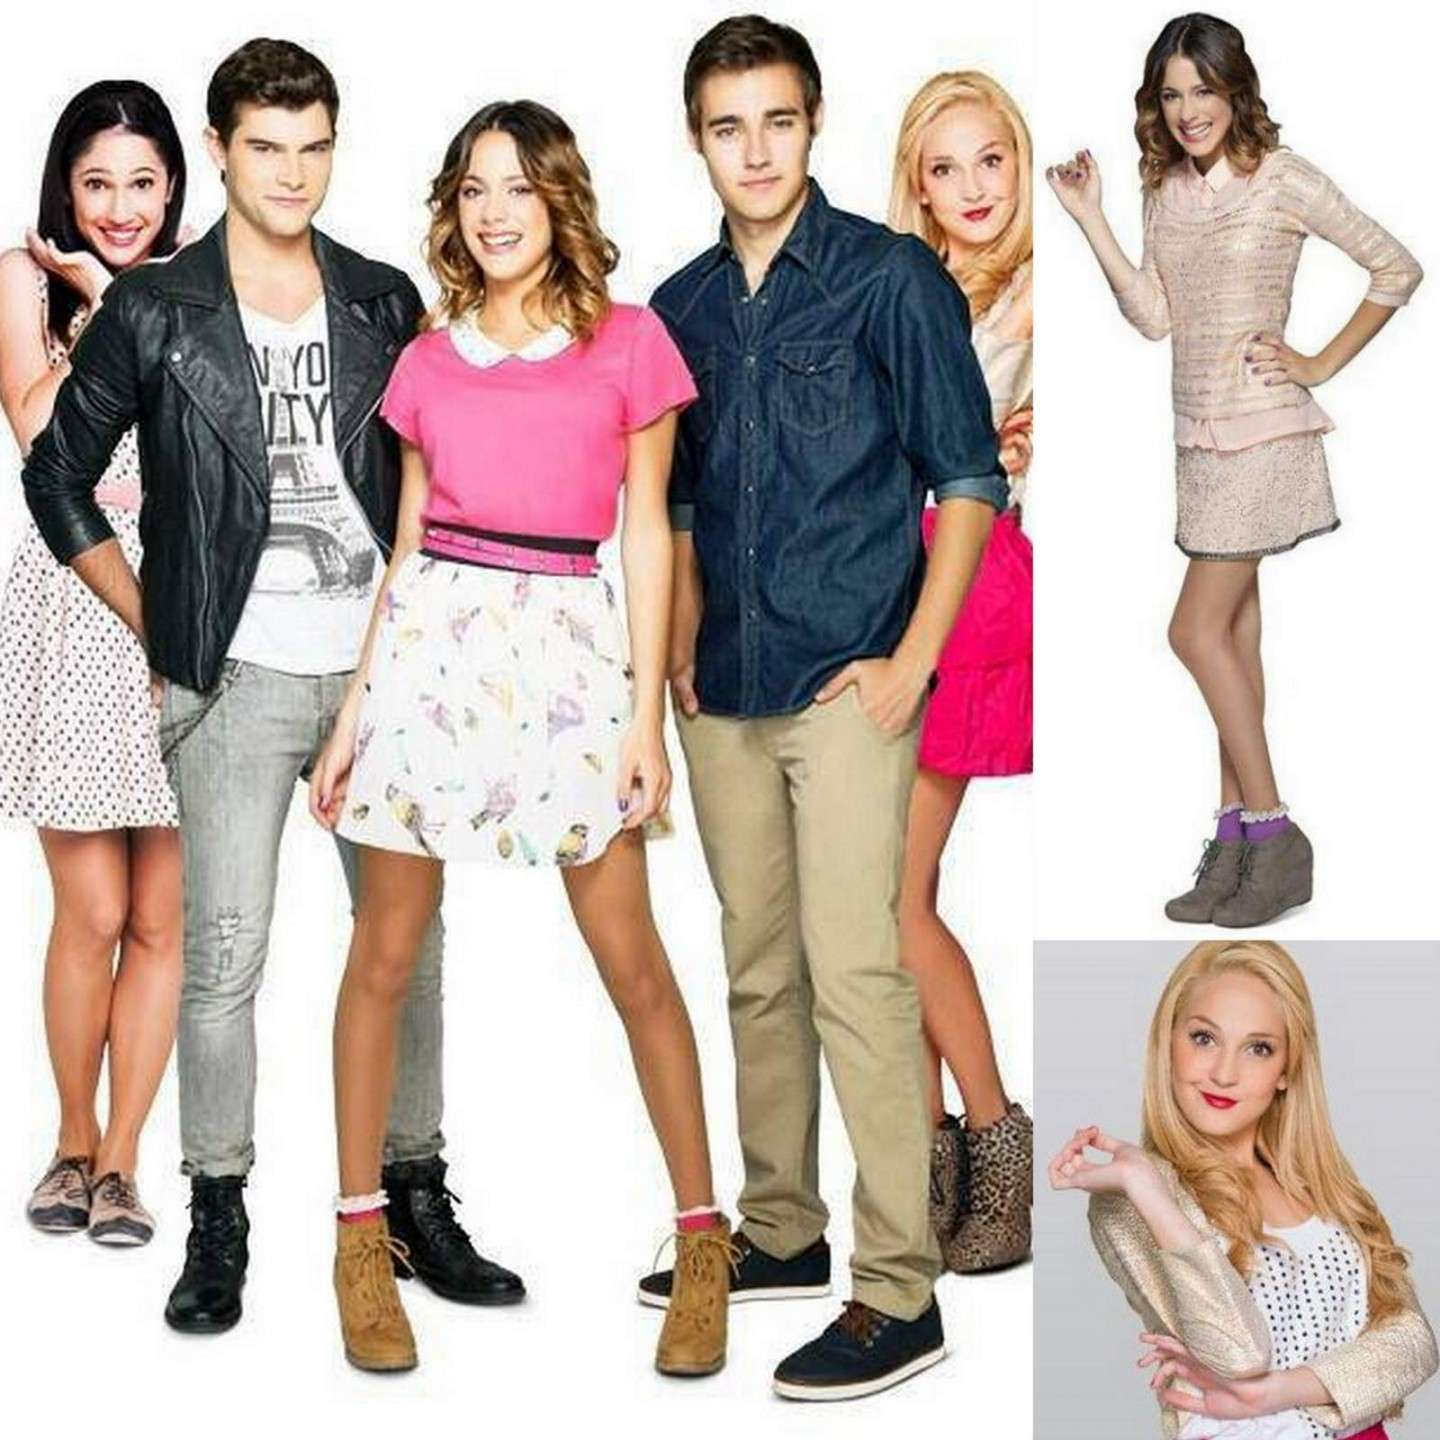 Violetta outfit